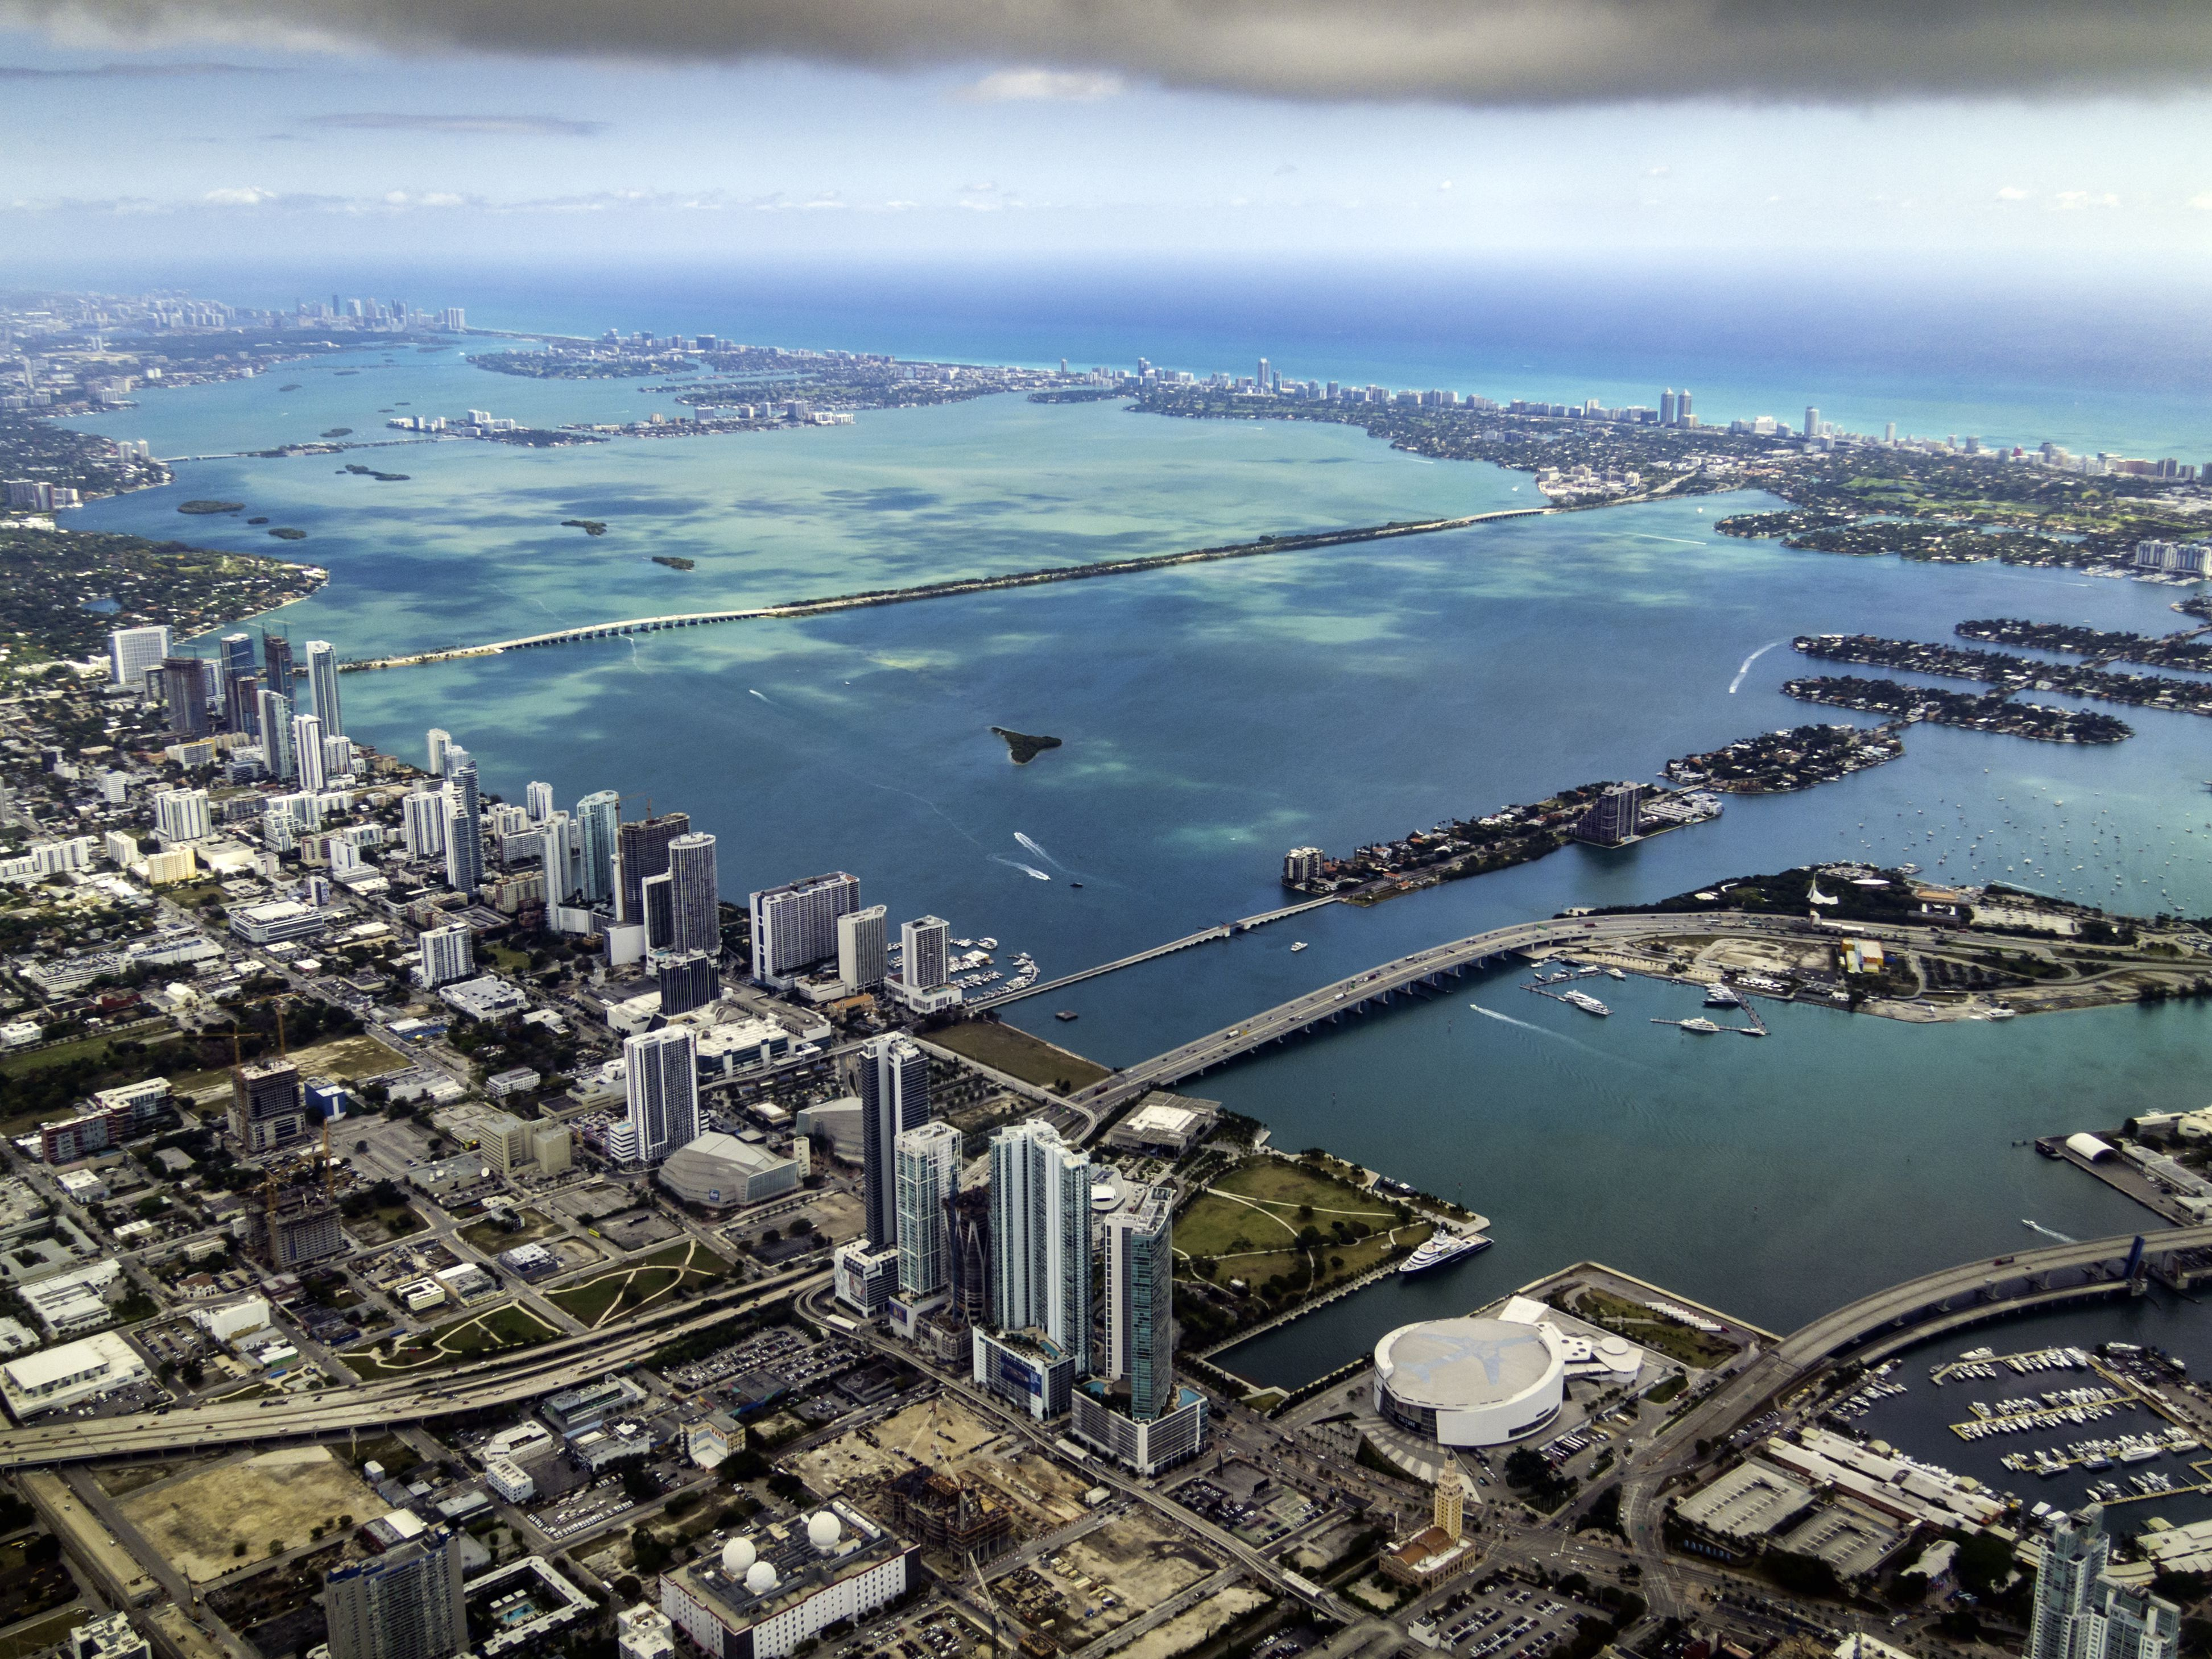 Miami and Biscayne Bay Aerial